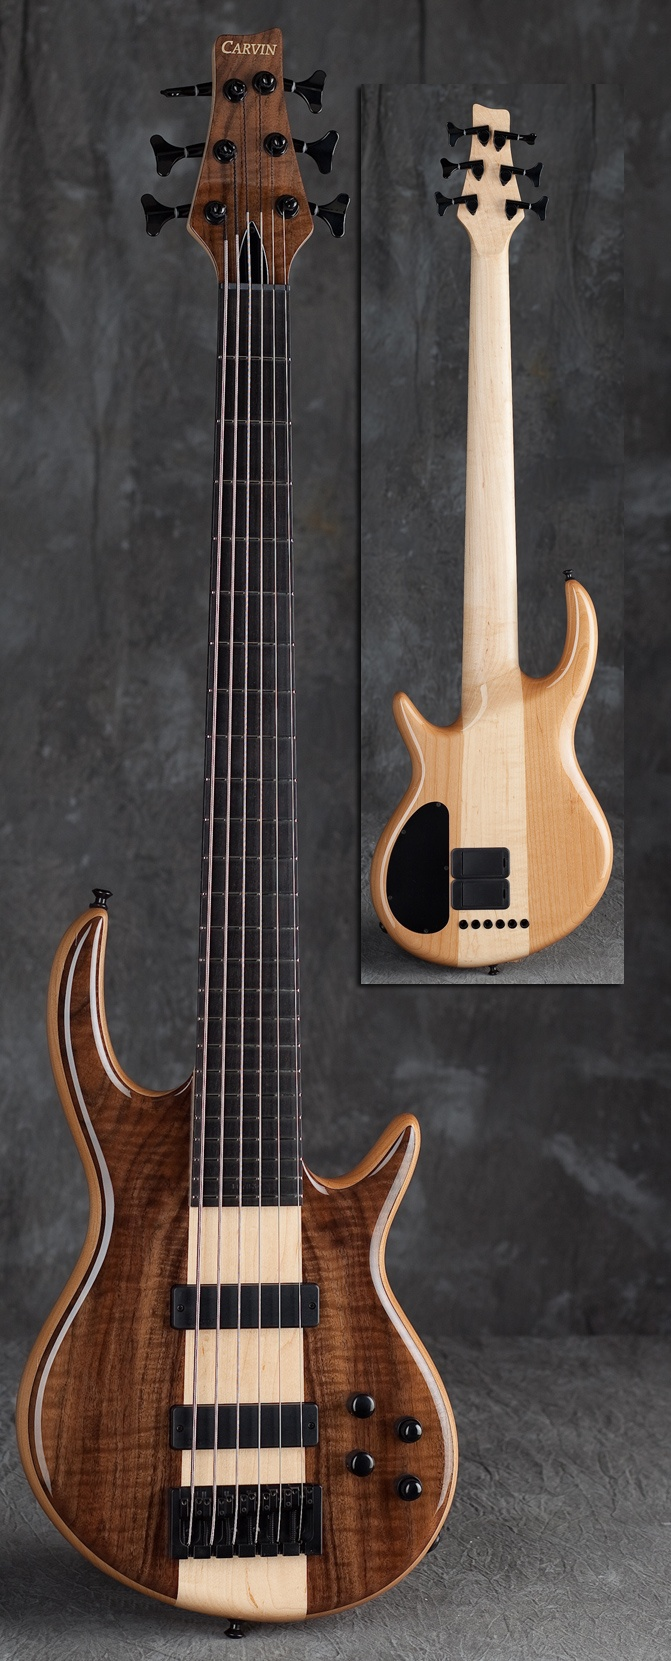 carvin 6 string bass i want one so bad bands instruments and musicians pinterest sweet. Black Bedroom Furniture Sets. Home Design Ideas